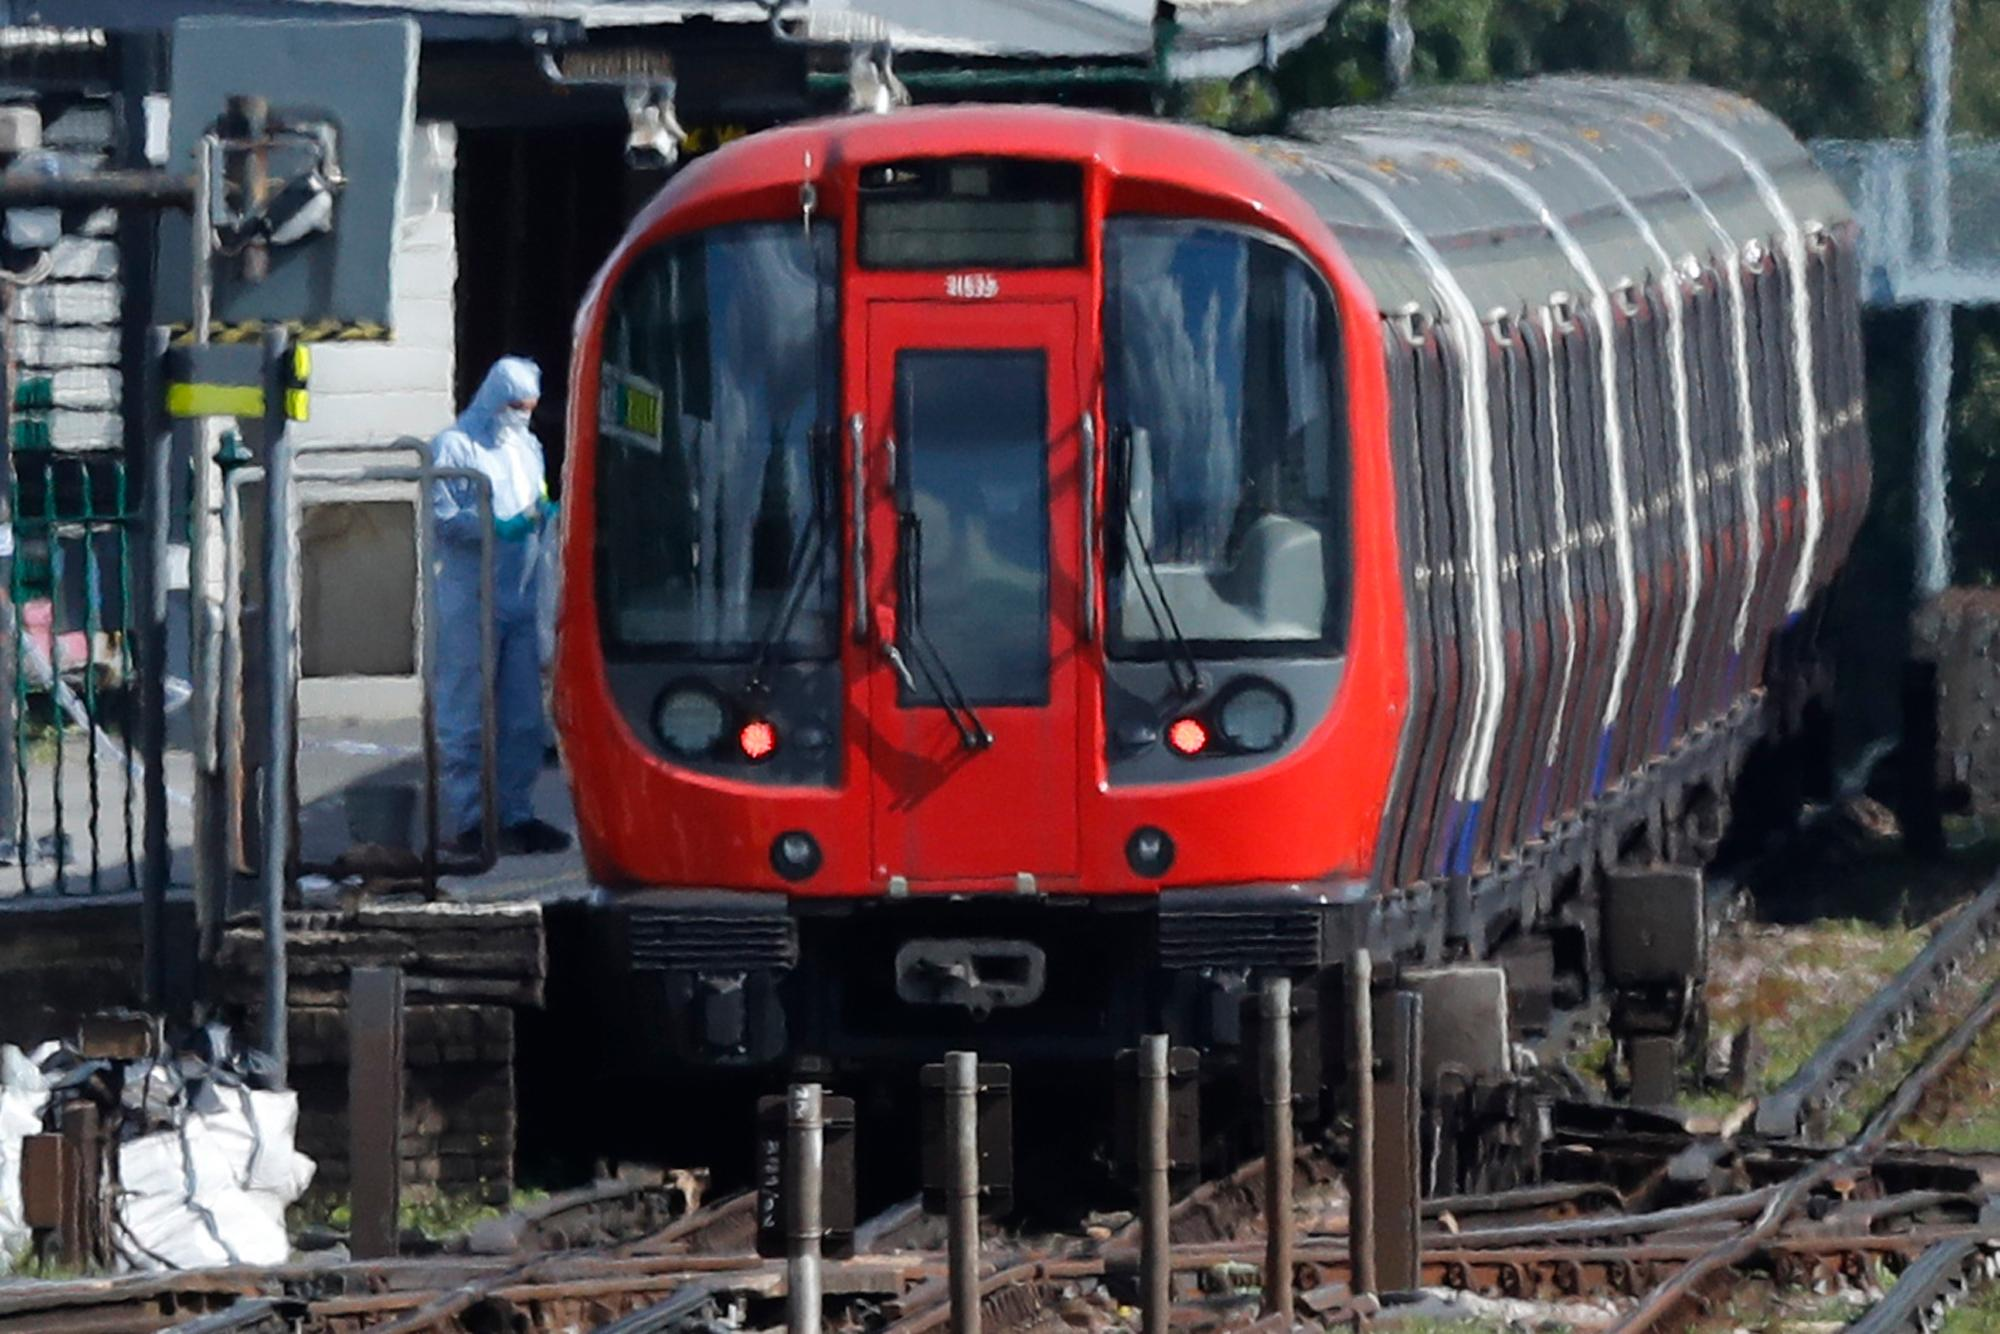 A police forensic officer stands beside the train where an incident happened, that police say they are investigating as a terrorist attack, at Parsons Green subway station in London, Friday, Sept. 15, 2017. A bucket wrapped in an insulated bag caught fire on a packed London subway train Friday, sending commuters stampeding in panic at the height of the morning rush hour. (AP Photo/Frank Augstein)